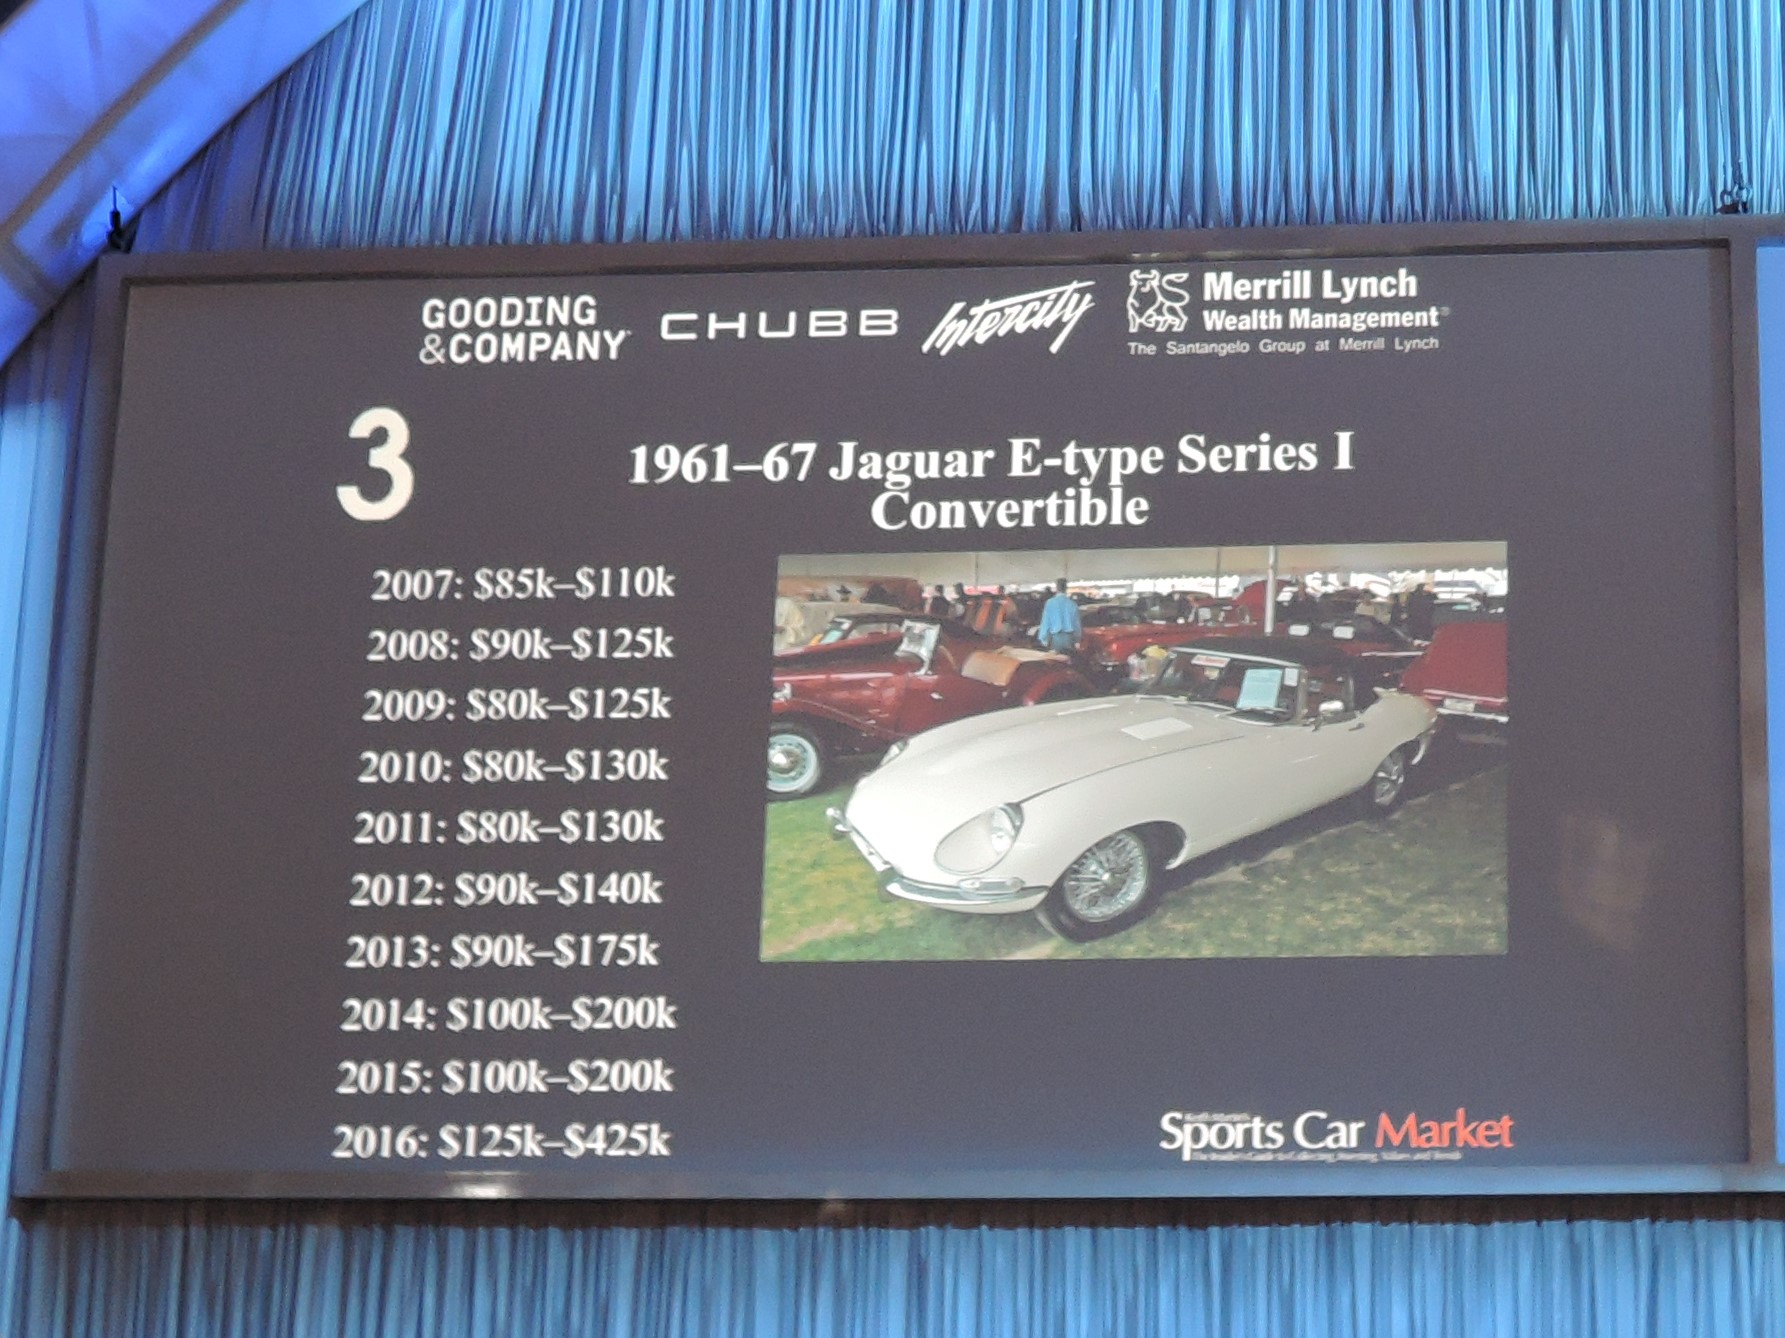 Jaguar E-Type Series i Convertible - Monterey 2016; Sports Car Market Insider's Seminar and Auctions